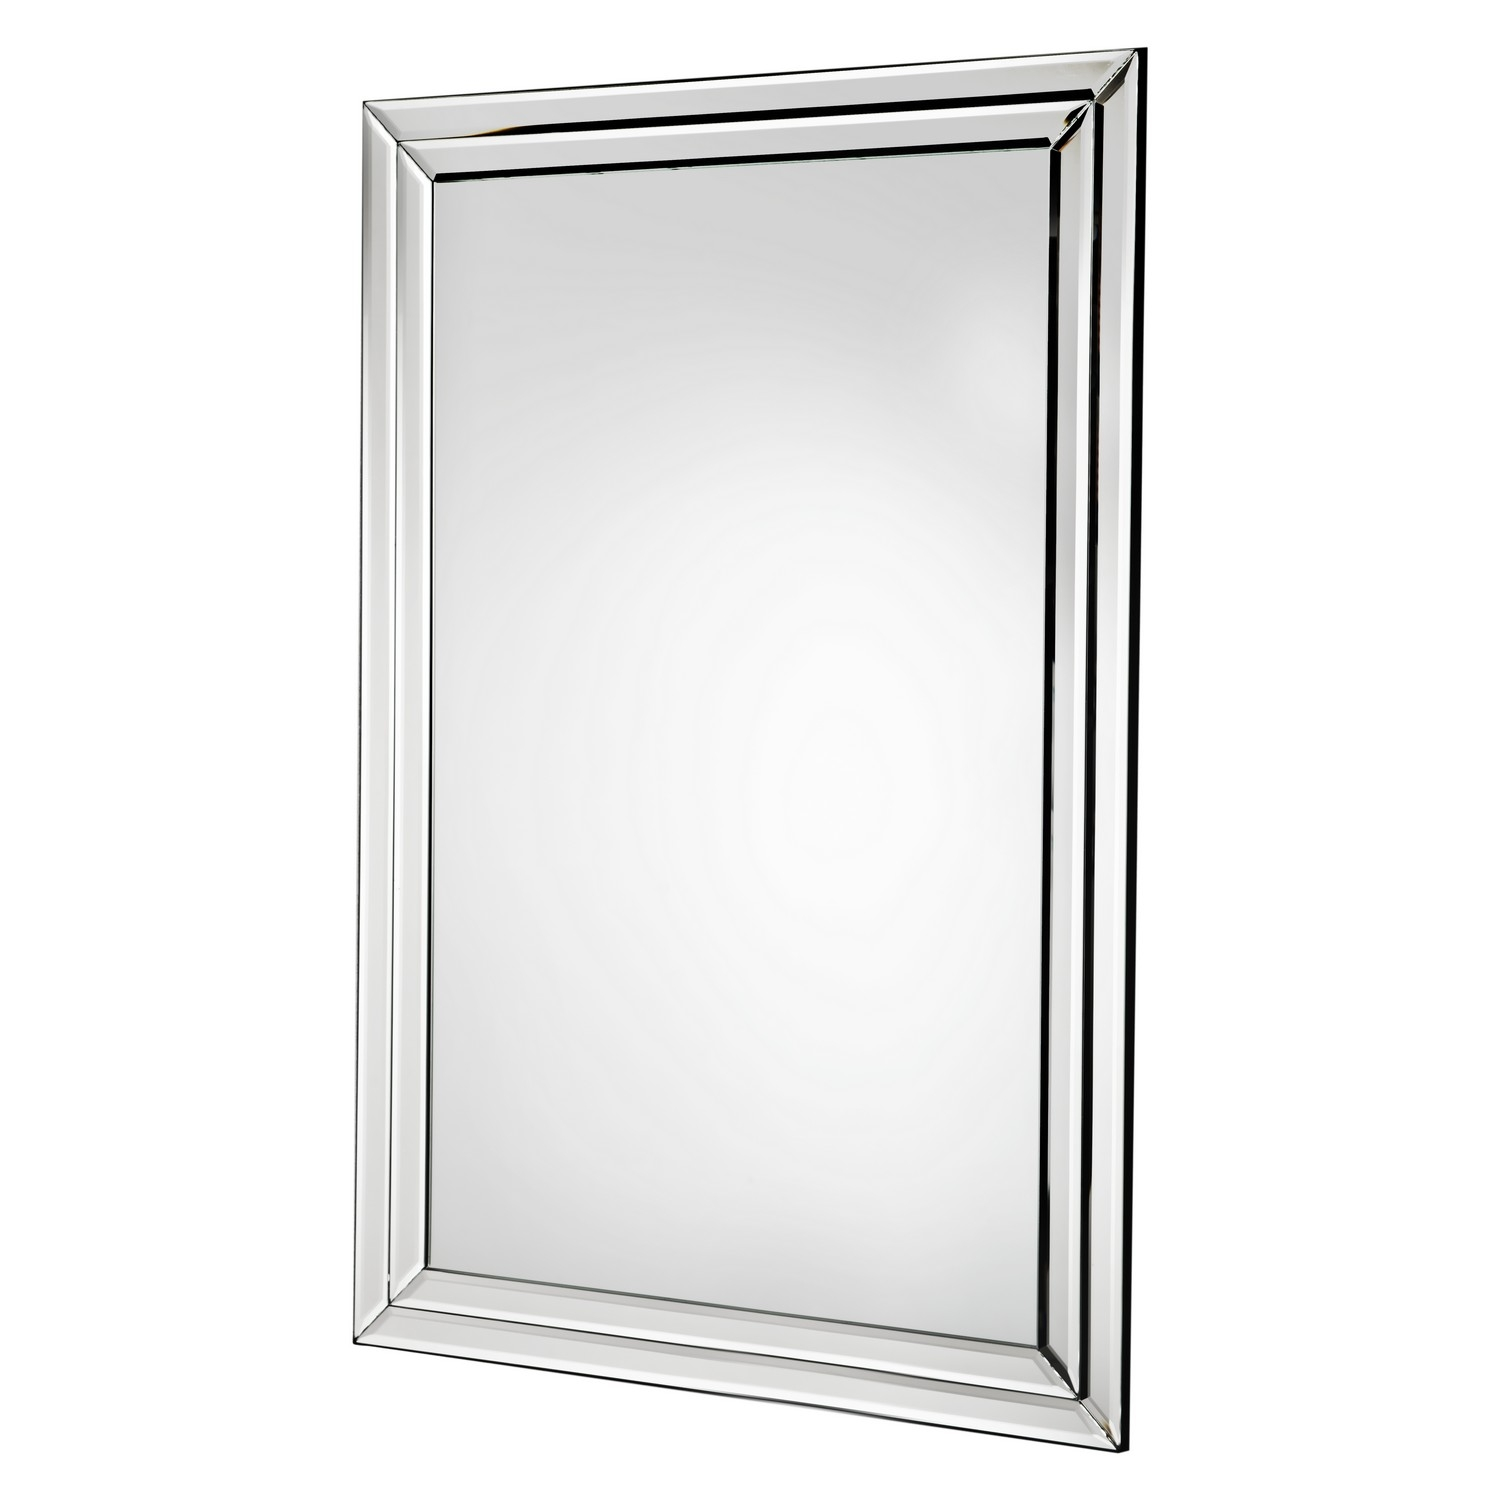 Buy Double Frame Beveled Glass Mirror Mirrors The Range Regarding Double Bevelled Mirror (Image 2 of 15)